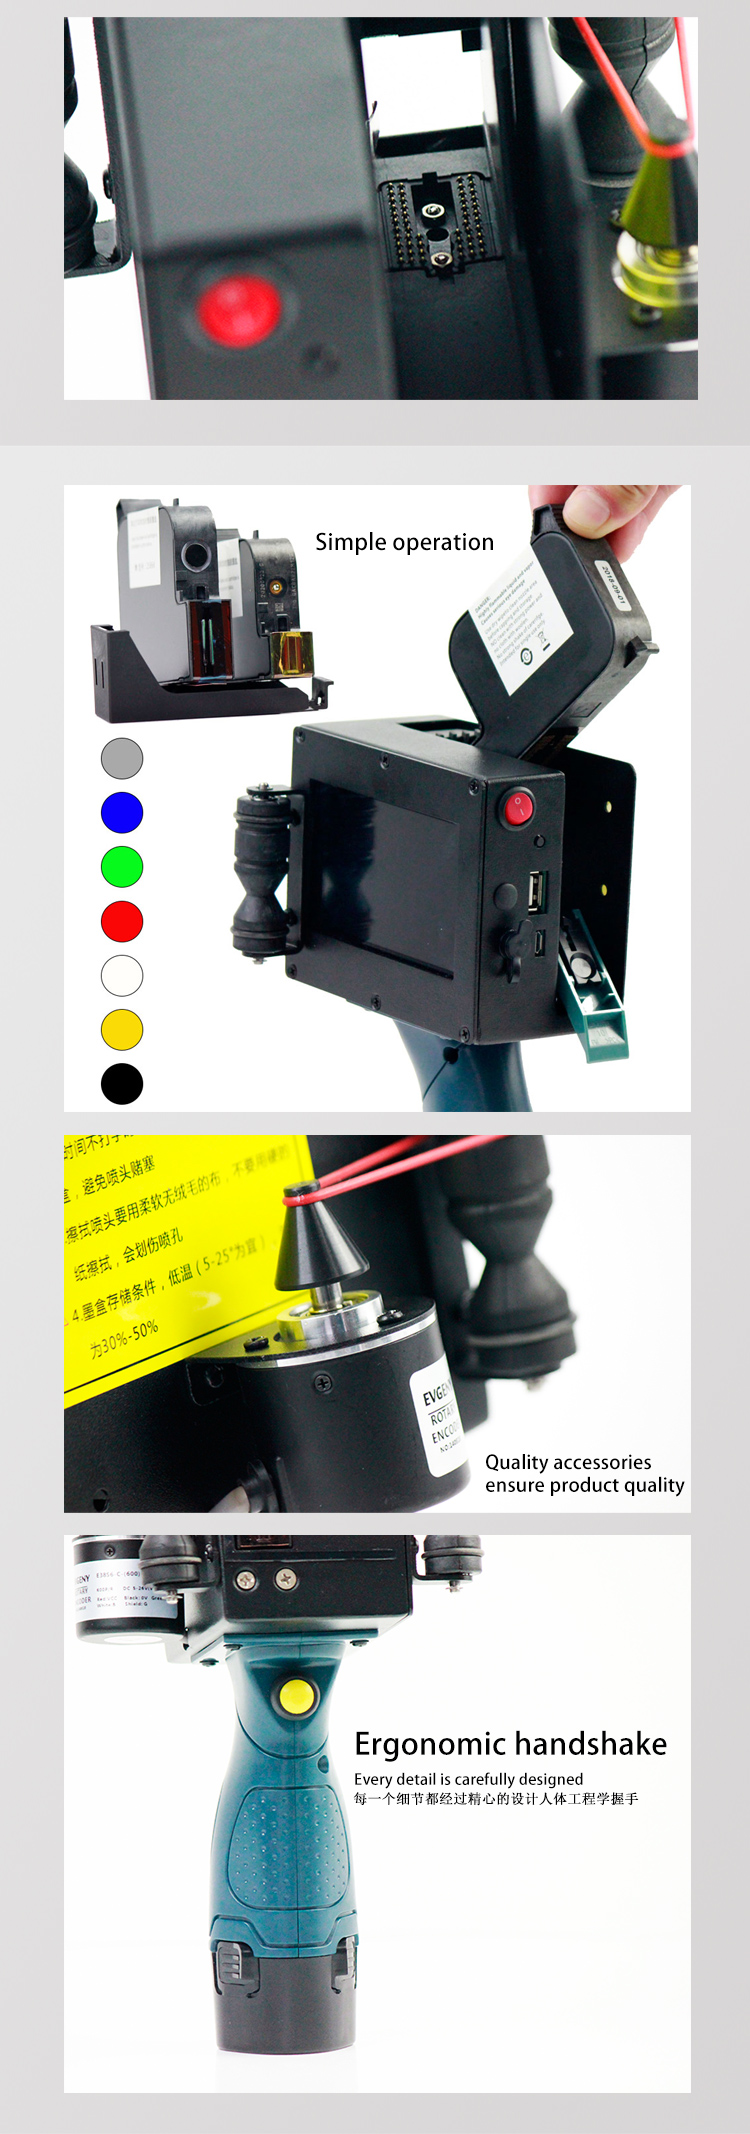 Compact Handheld Inkjet Marking Systems small Hand-held ...